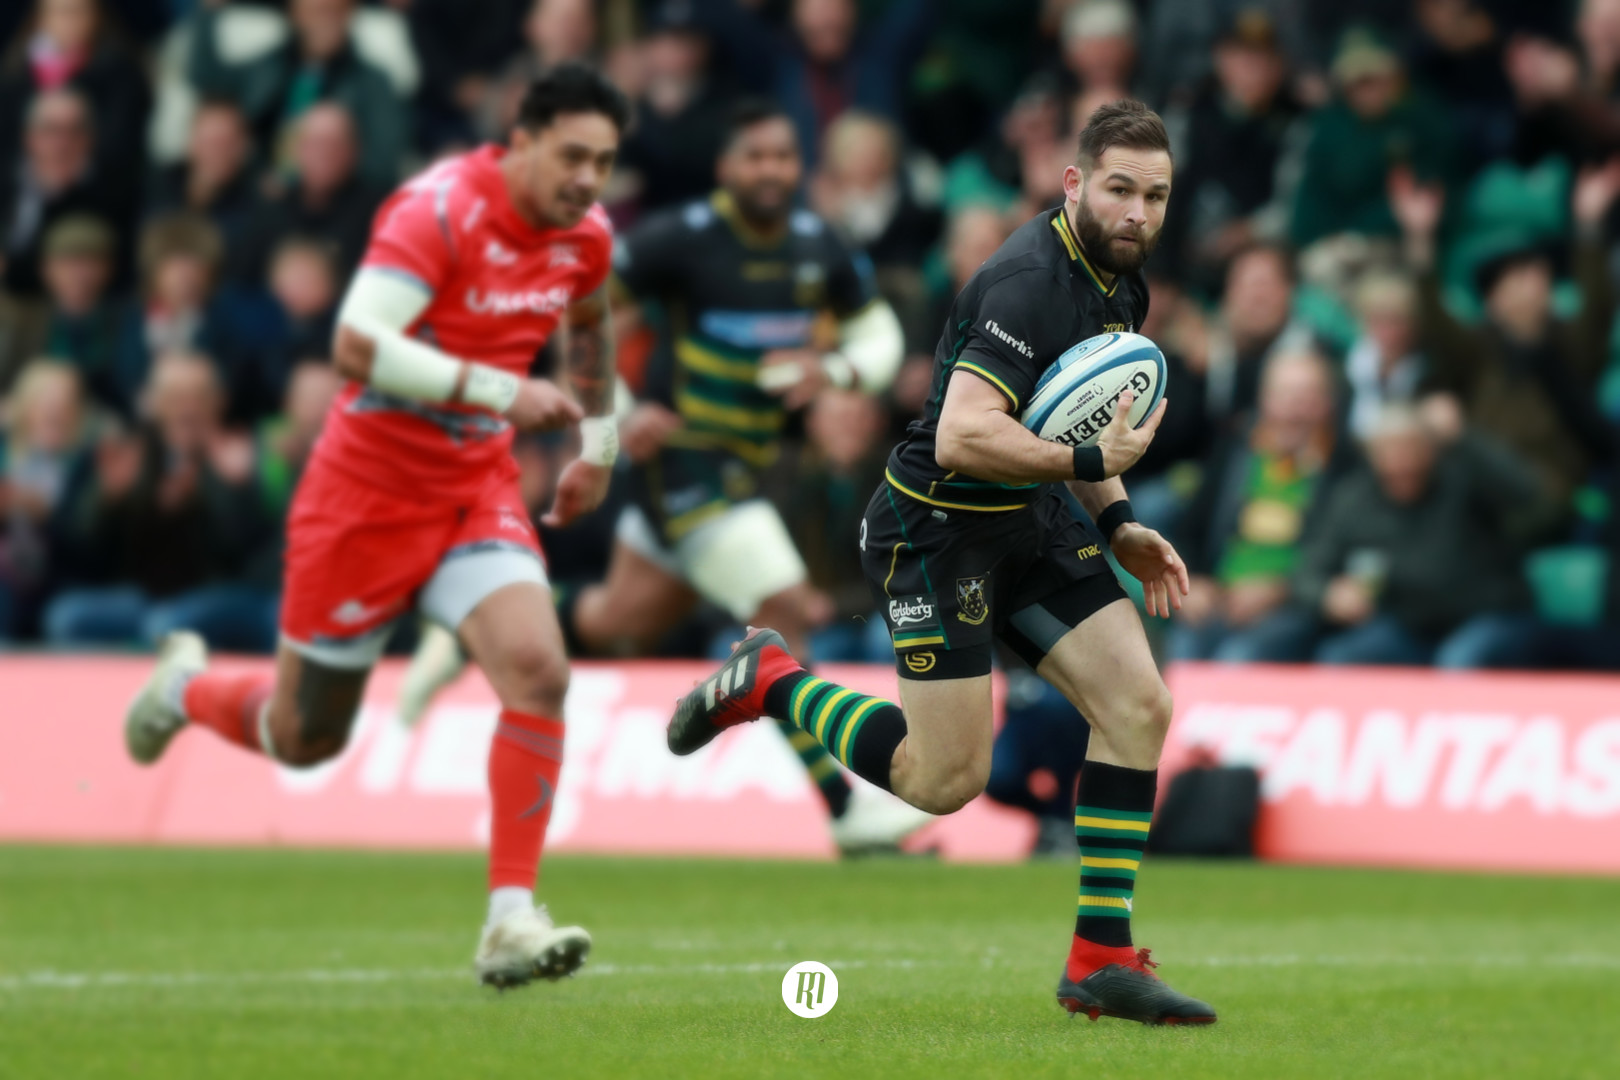 Top fantasy performers to pick at the Rugby World Cup in Japan